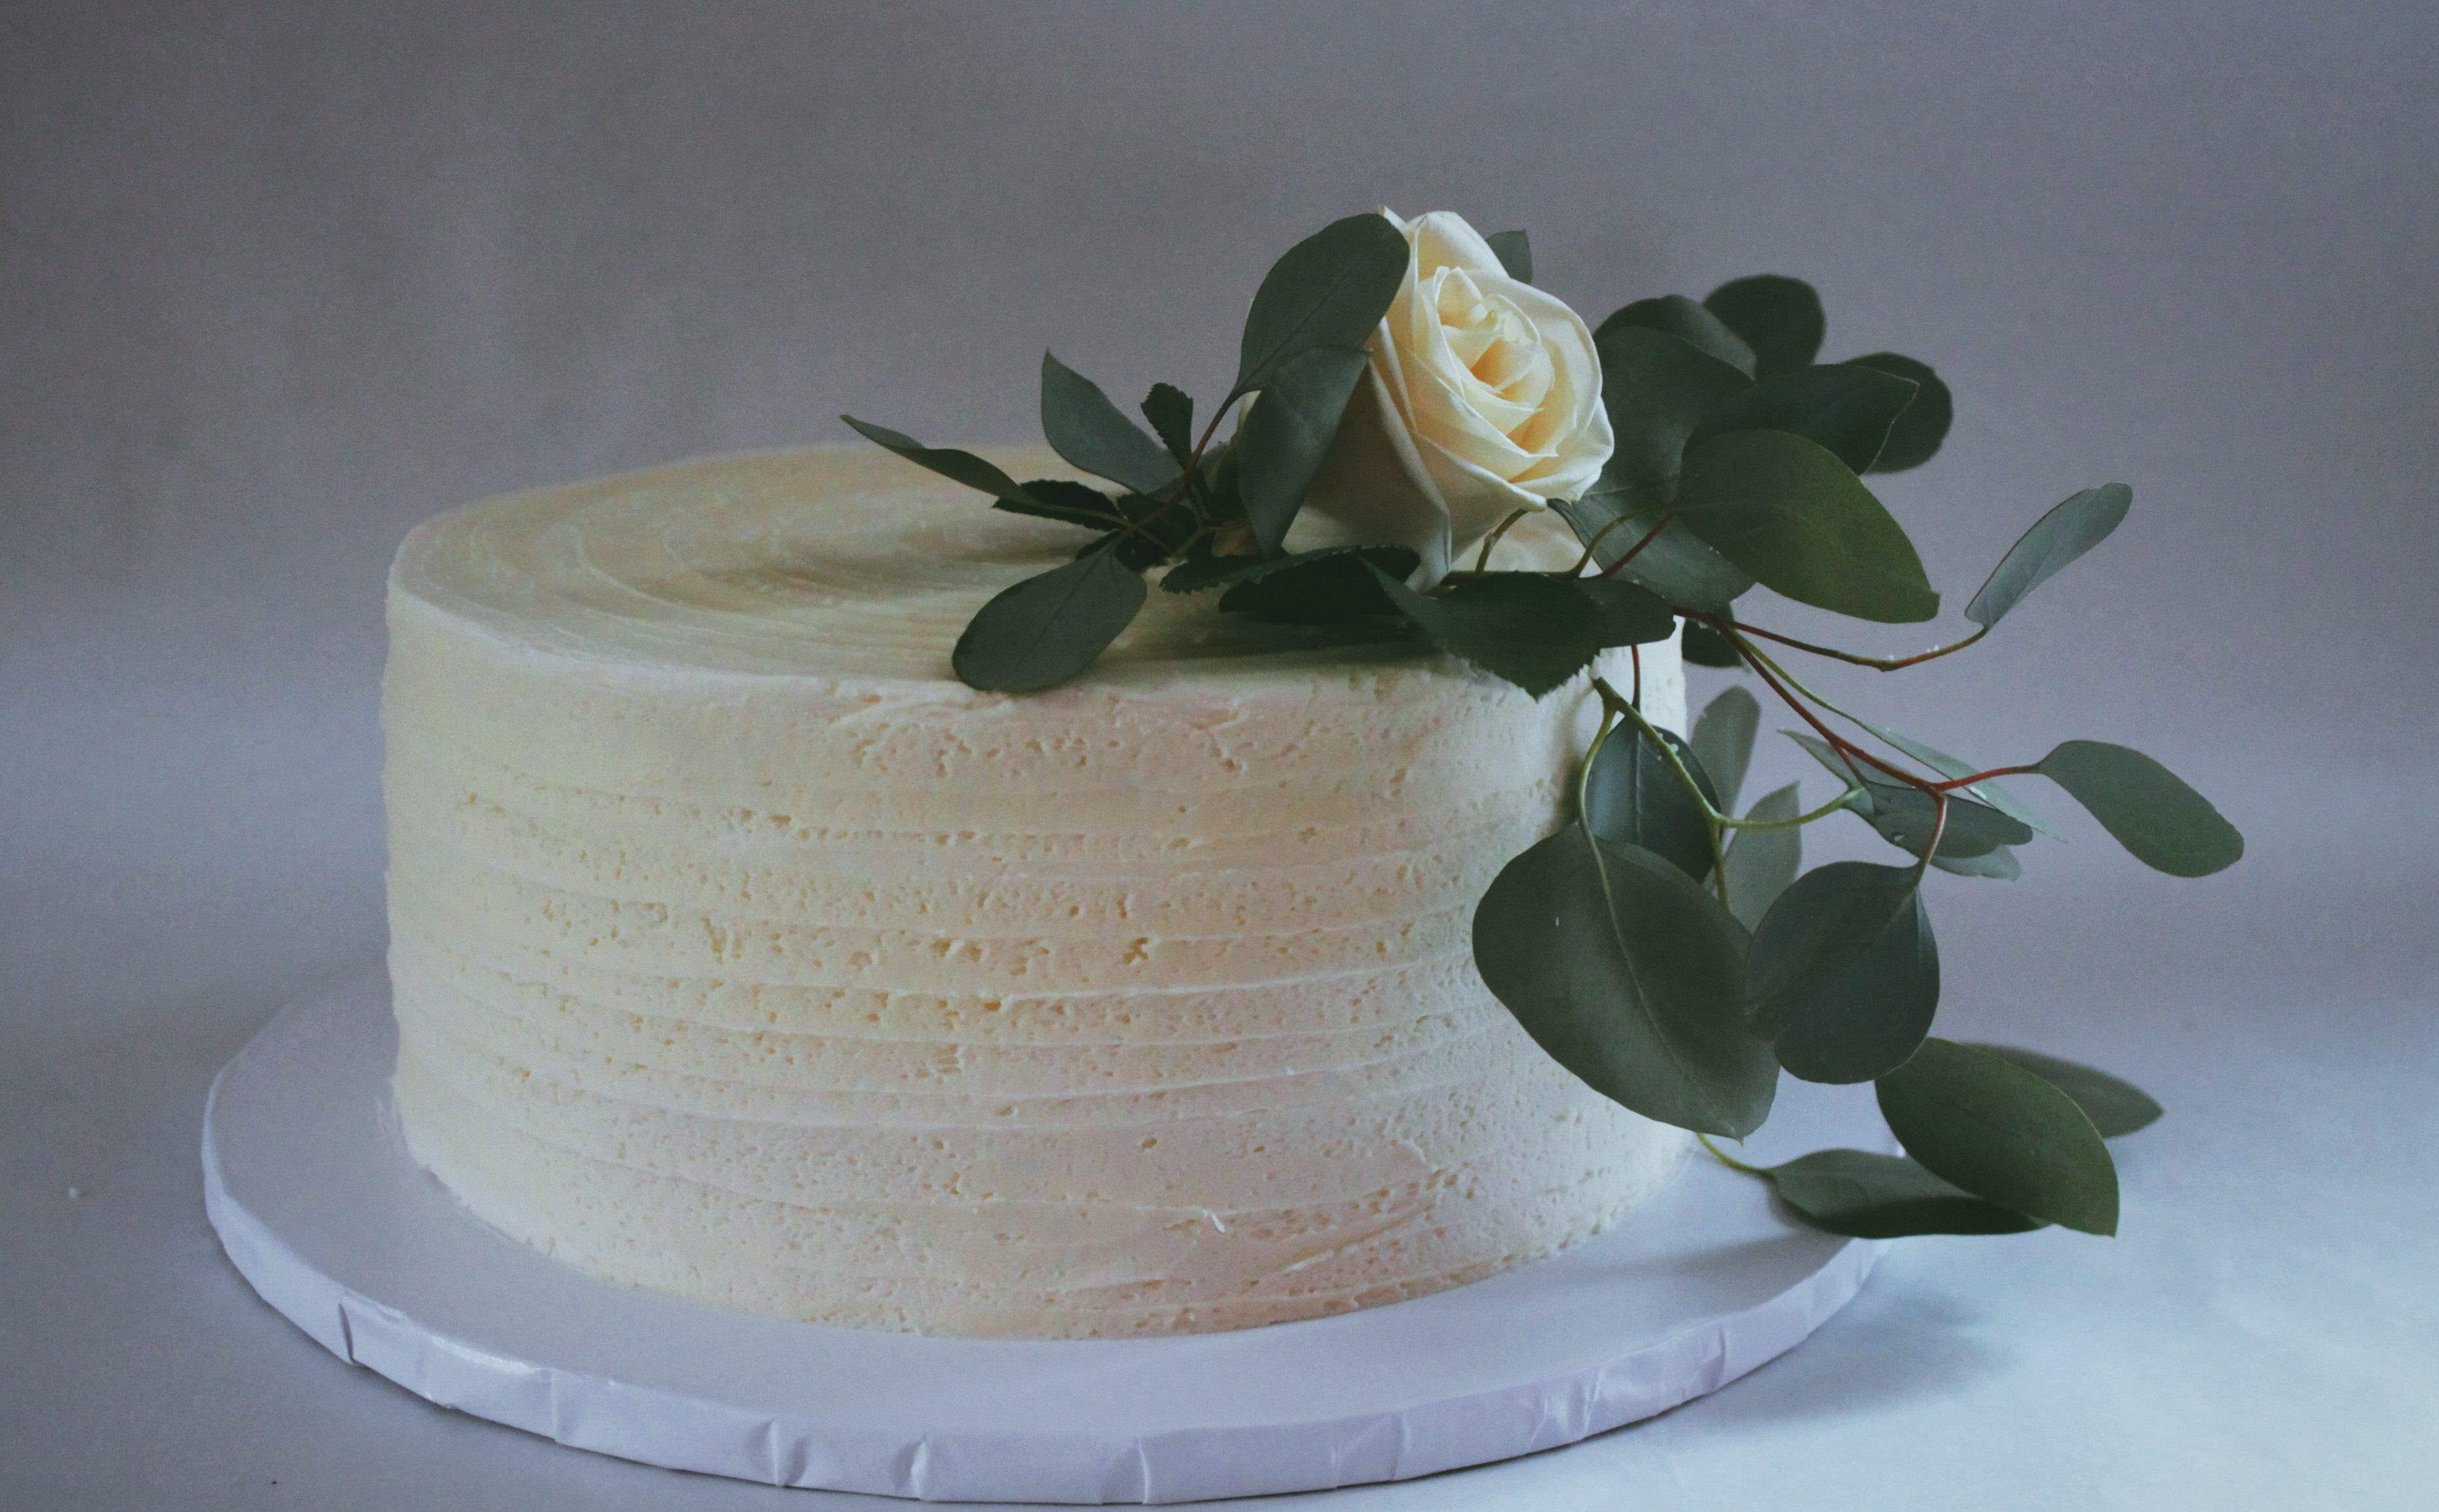 Simple single tier wedding cake with fresh white rose and greens